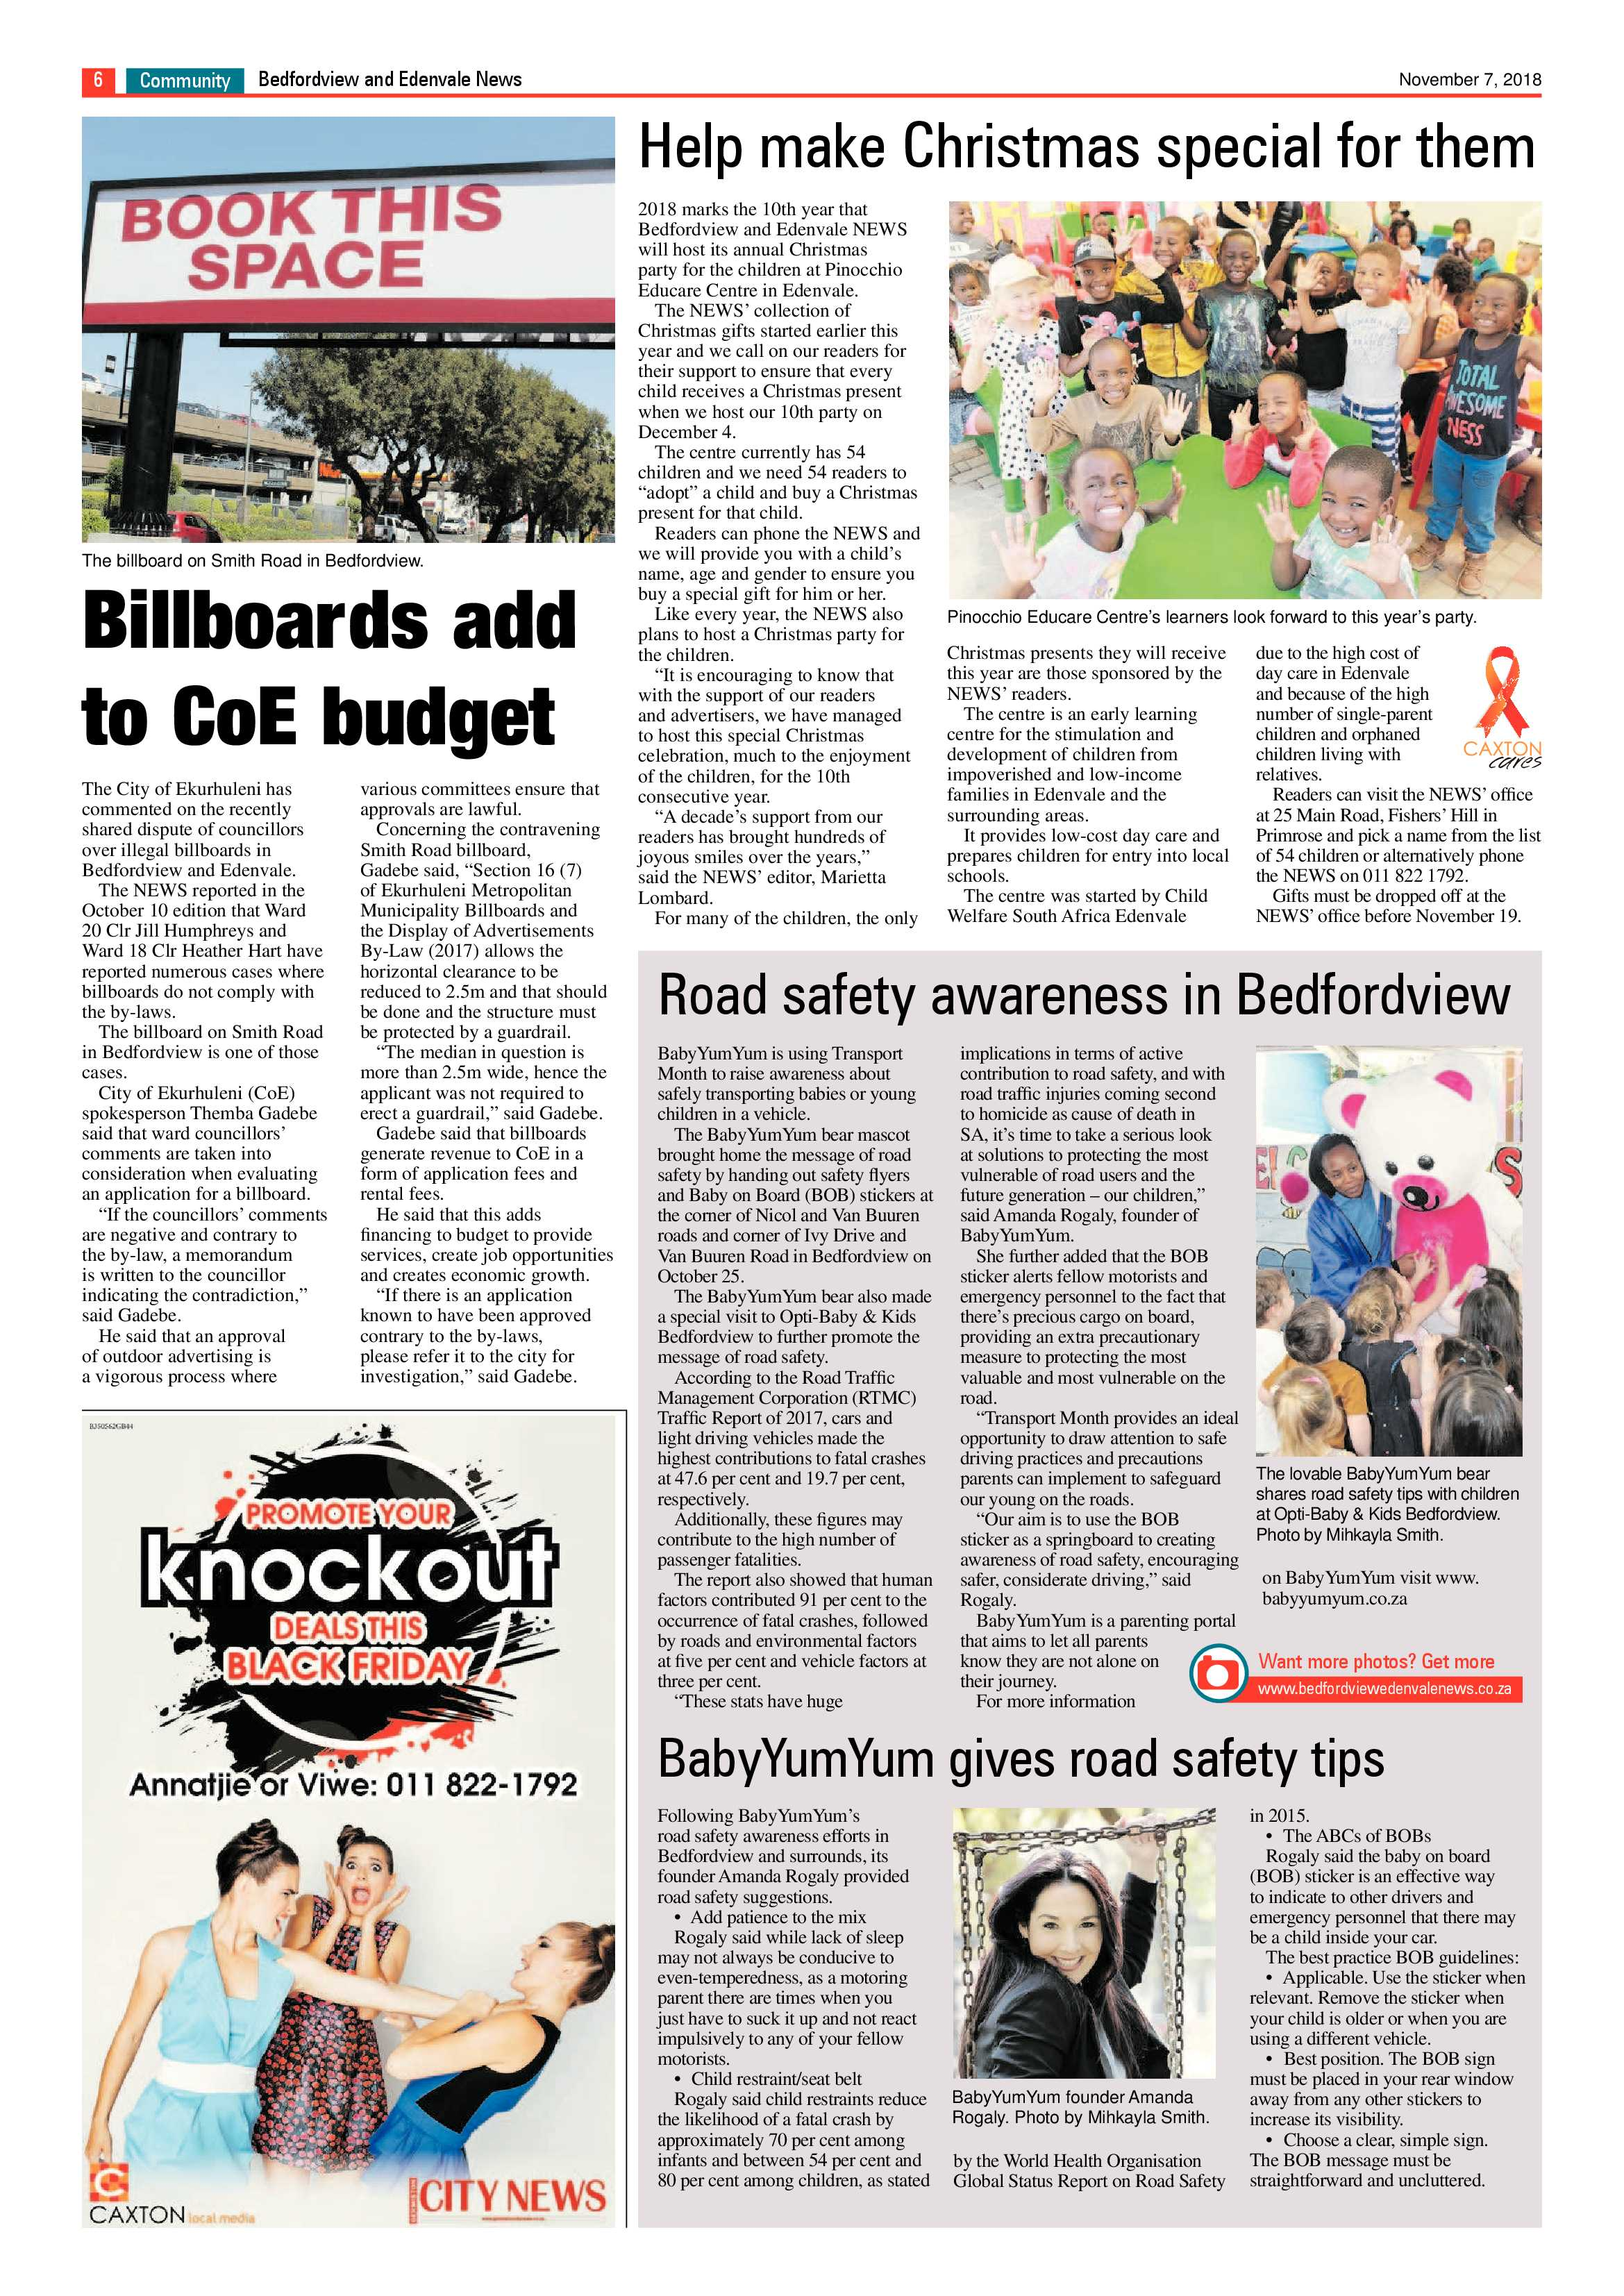 bedfordview-edenvale-news-07-november-2018-epapers-page-6